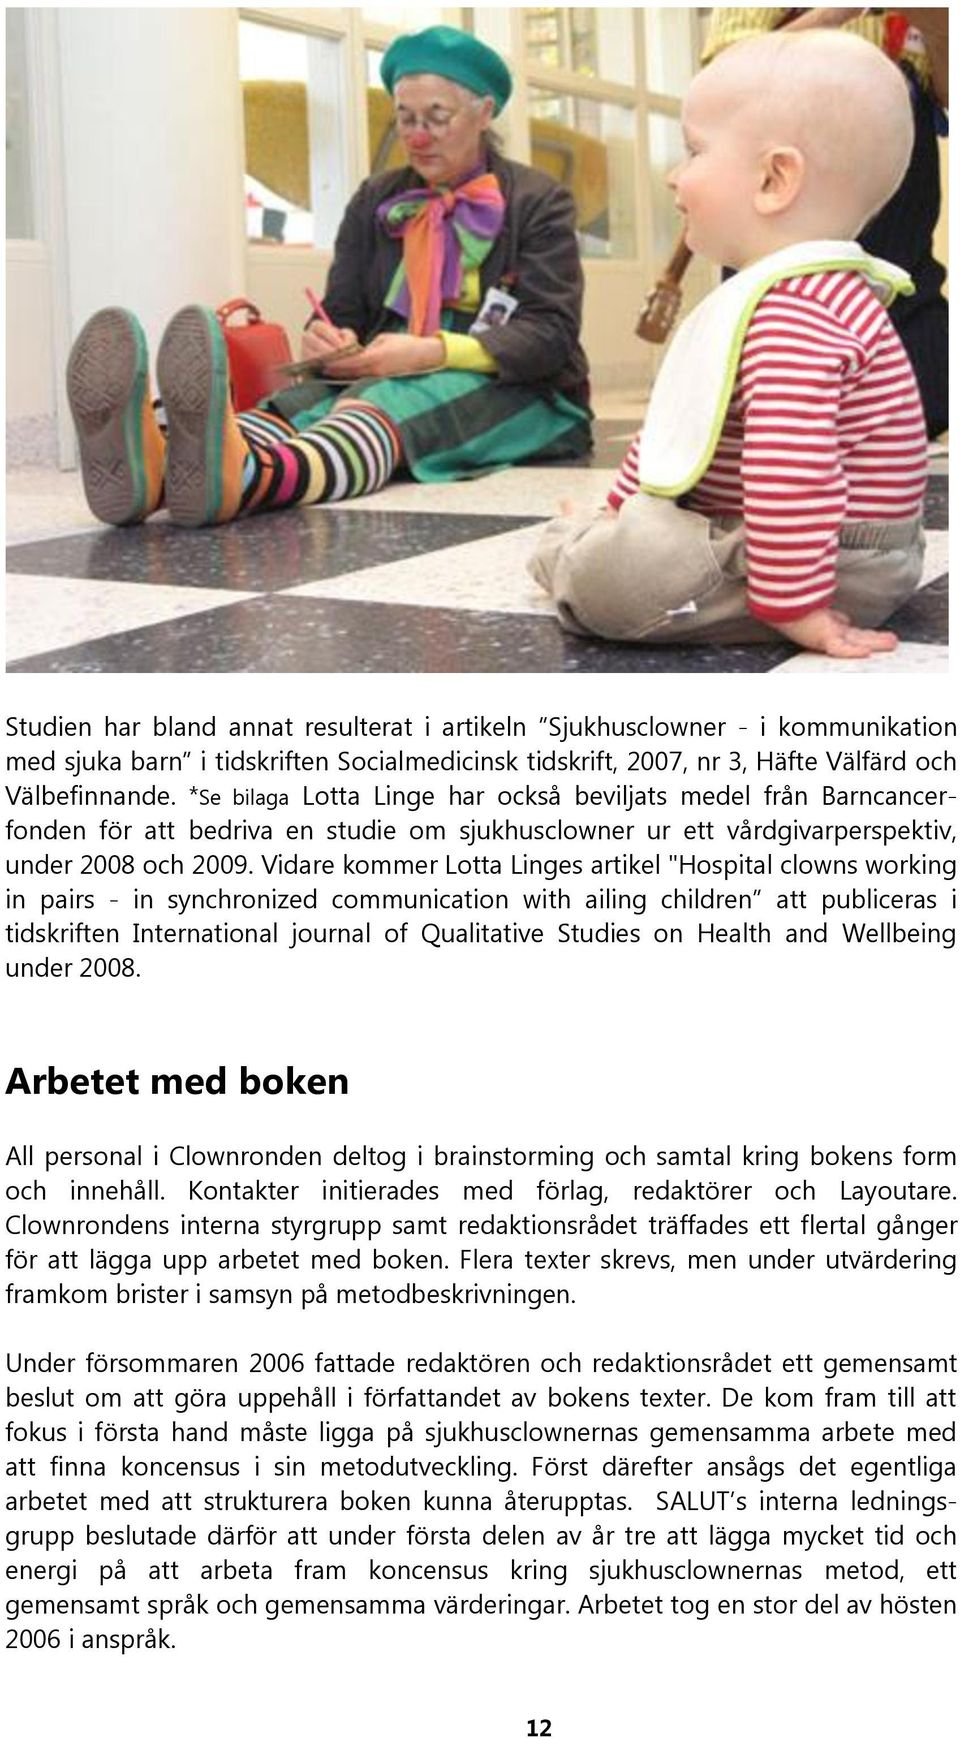 "Vidare kommer Lotta Linges artikel ""Hospital clowns working in pairs - in synchronized communication with ailing children att publiceras i tidskriften International journal of Qualitative Studies on"